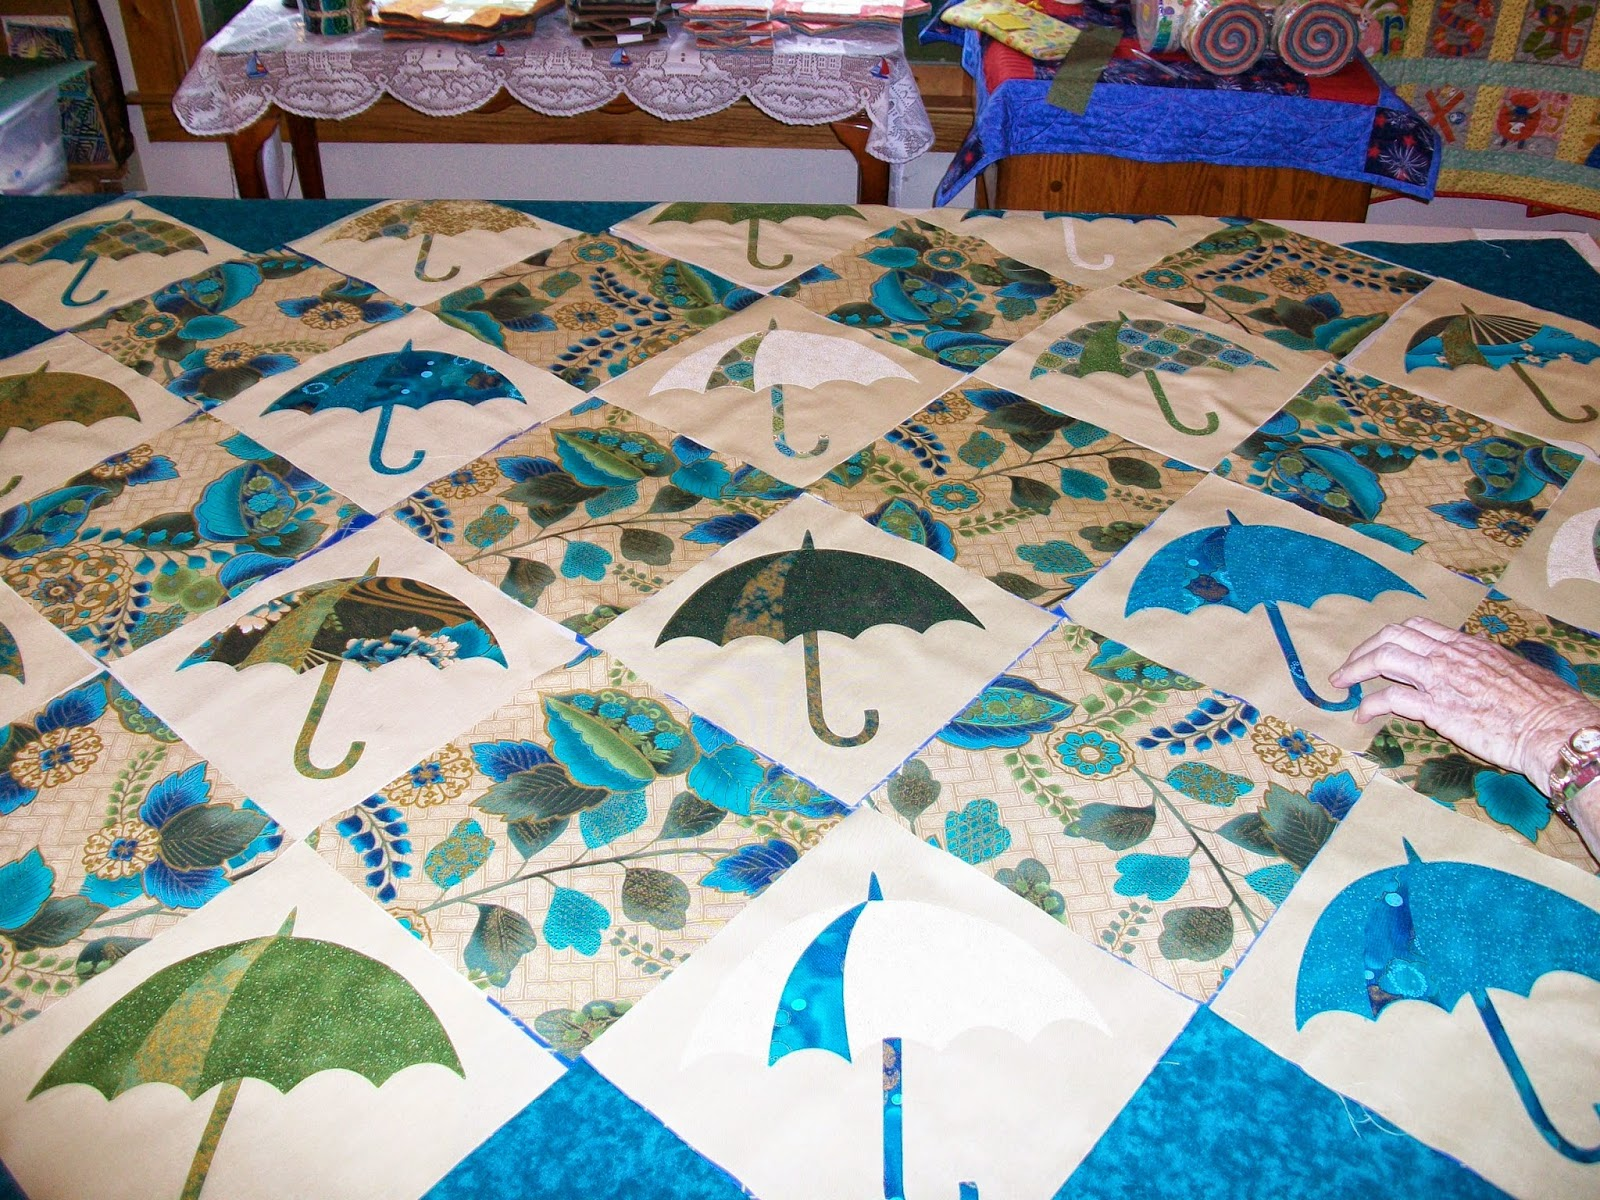 News From the Quilting Frame: Happenings down at the Quilting Frame